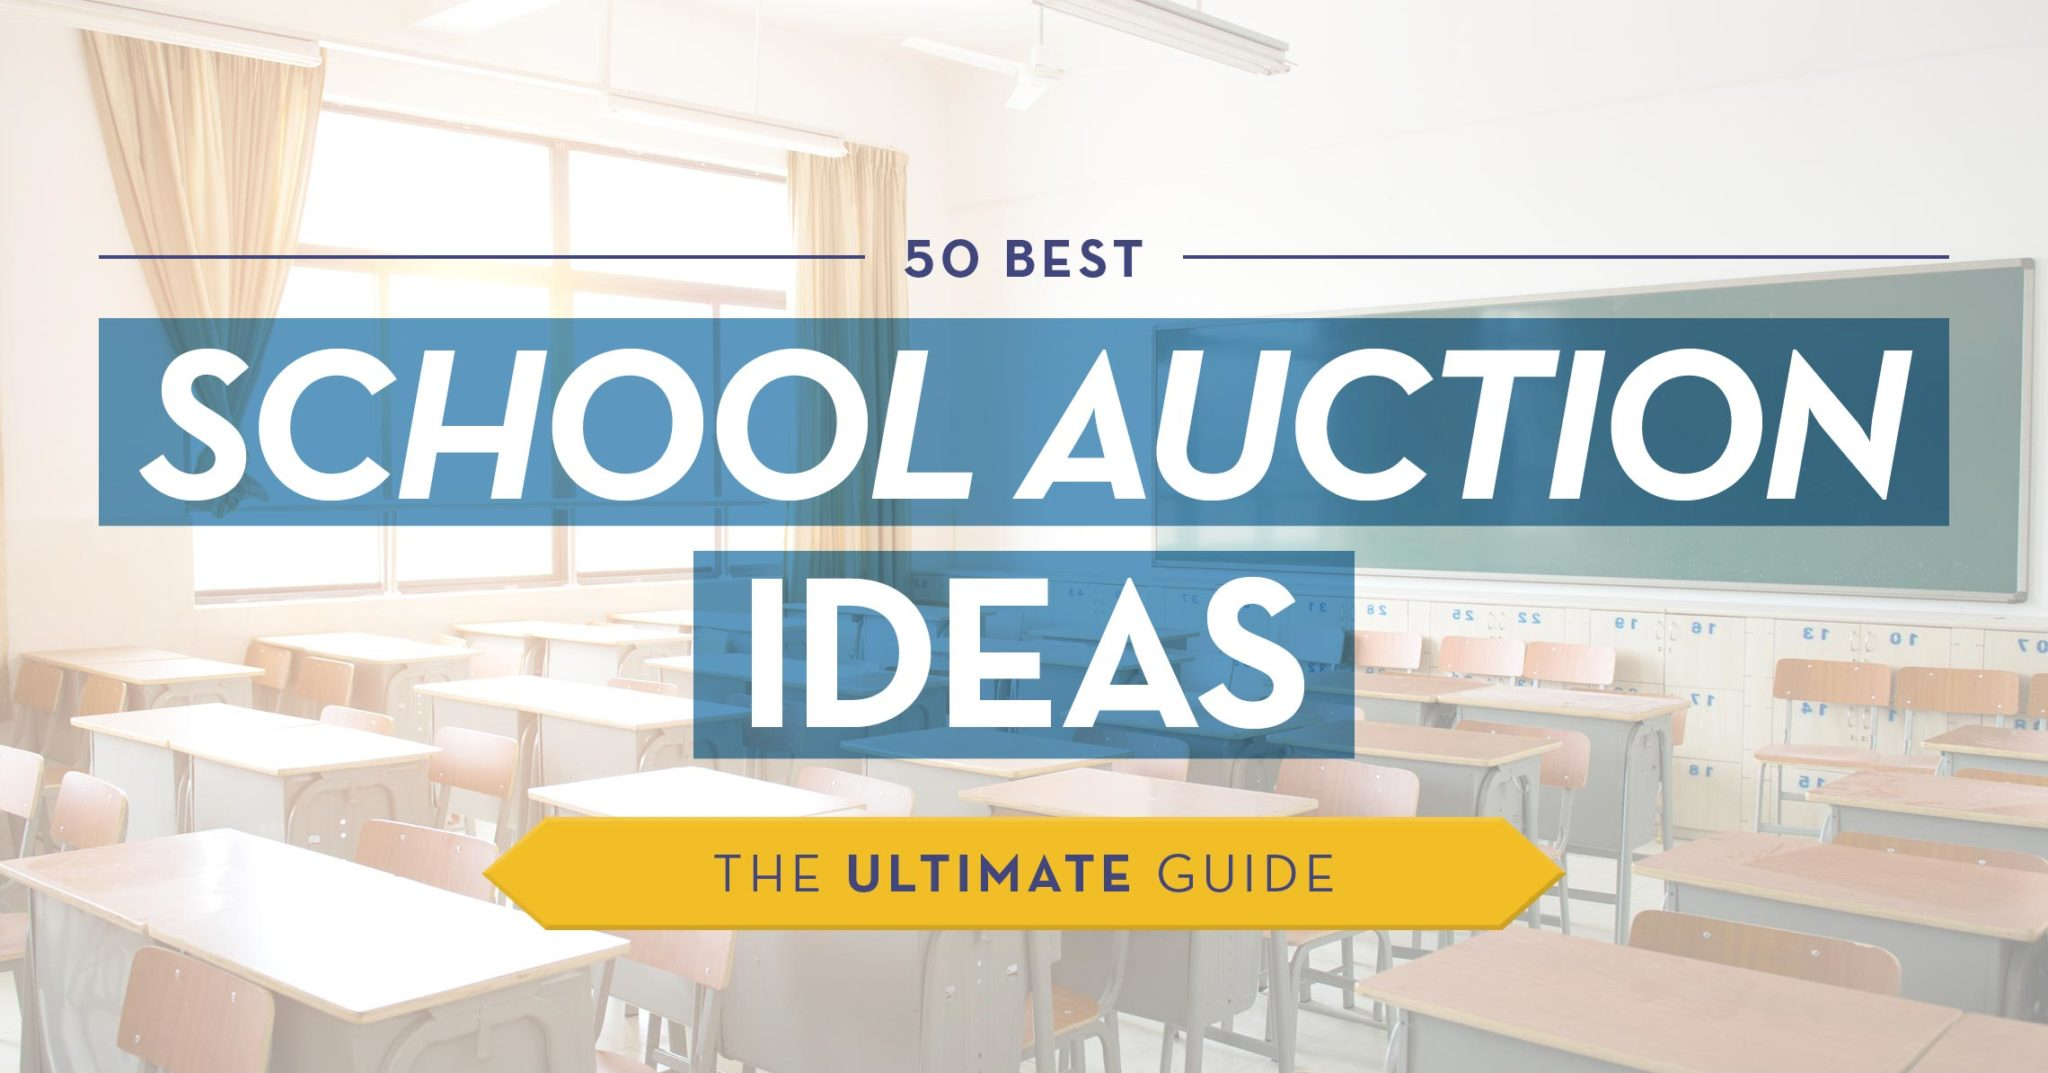 50 Best School Auction Ideas: The ultimate guide